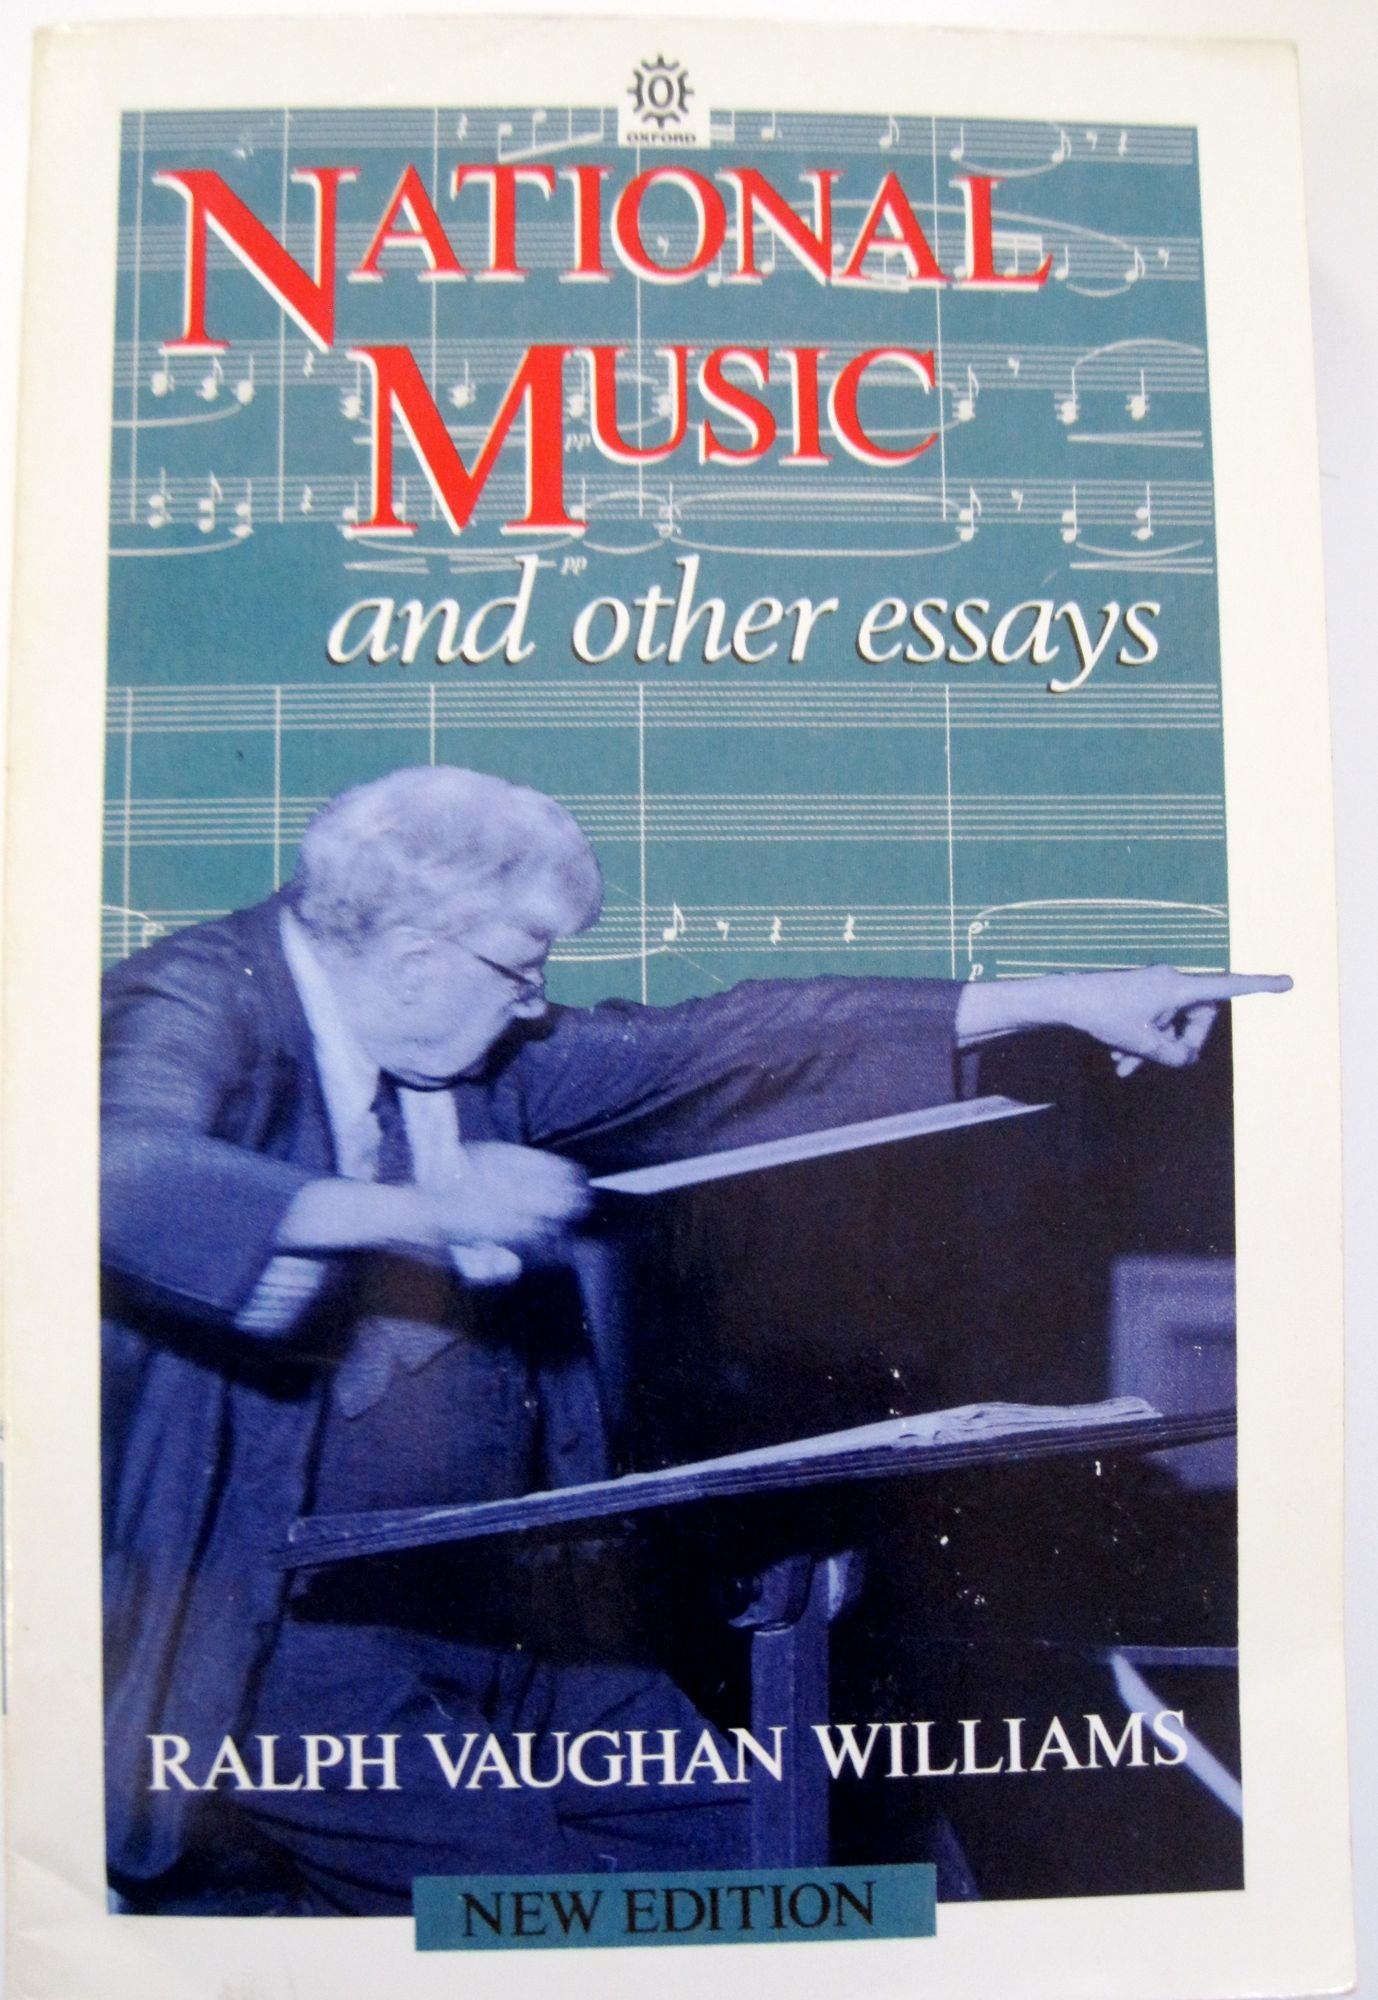 National Music and Other Essays (Oxford Paperbacks): Vaughan Williams,  Ralph, Vaughan Williams, Ursula, Kennedy, Michael: 9780192840165:  Amazon.com: Books